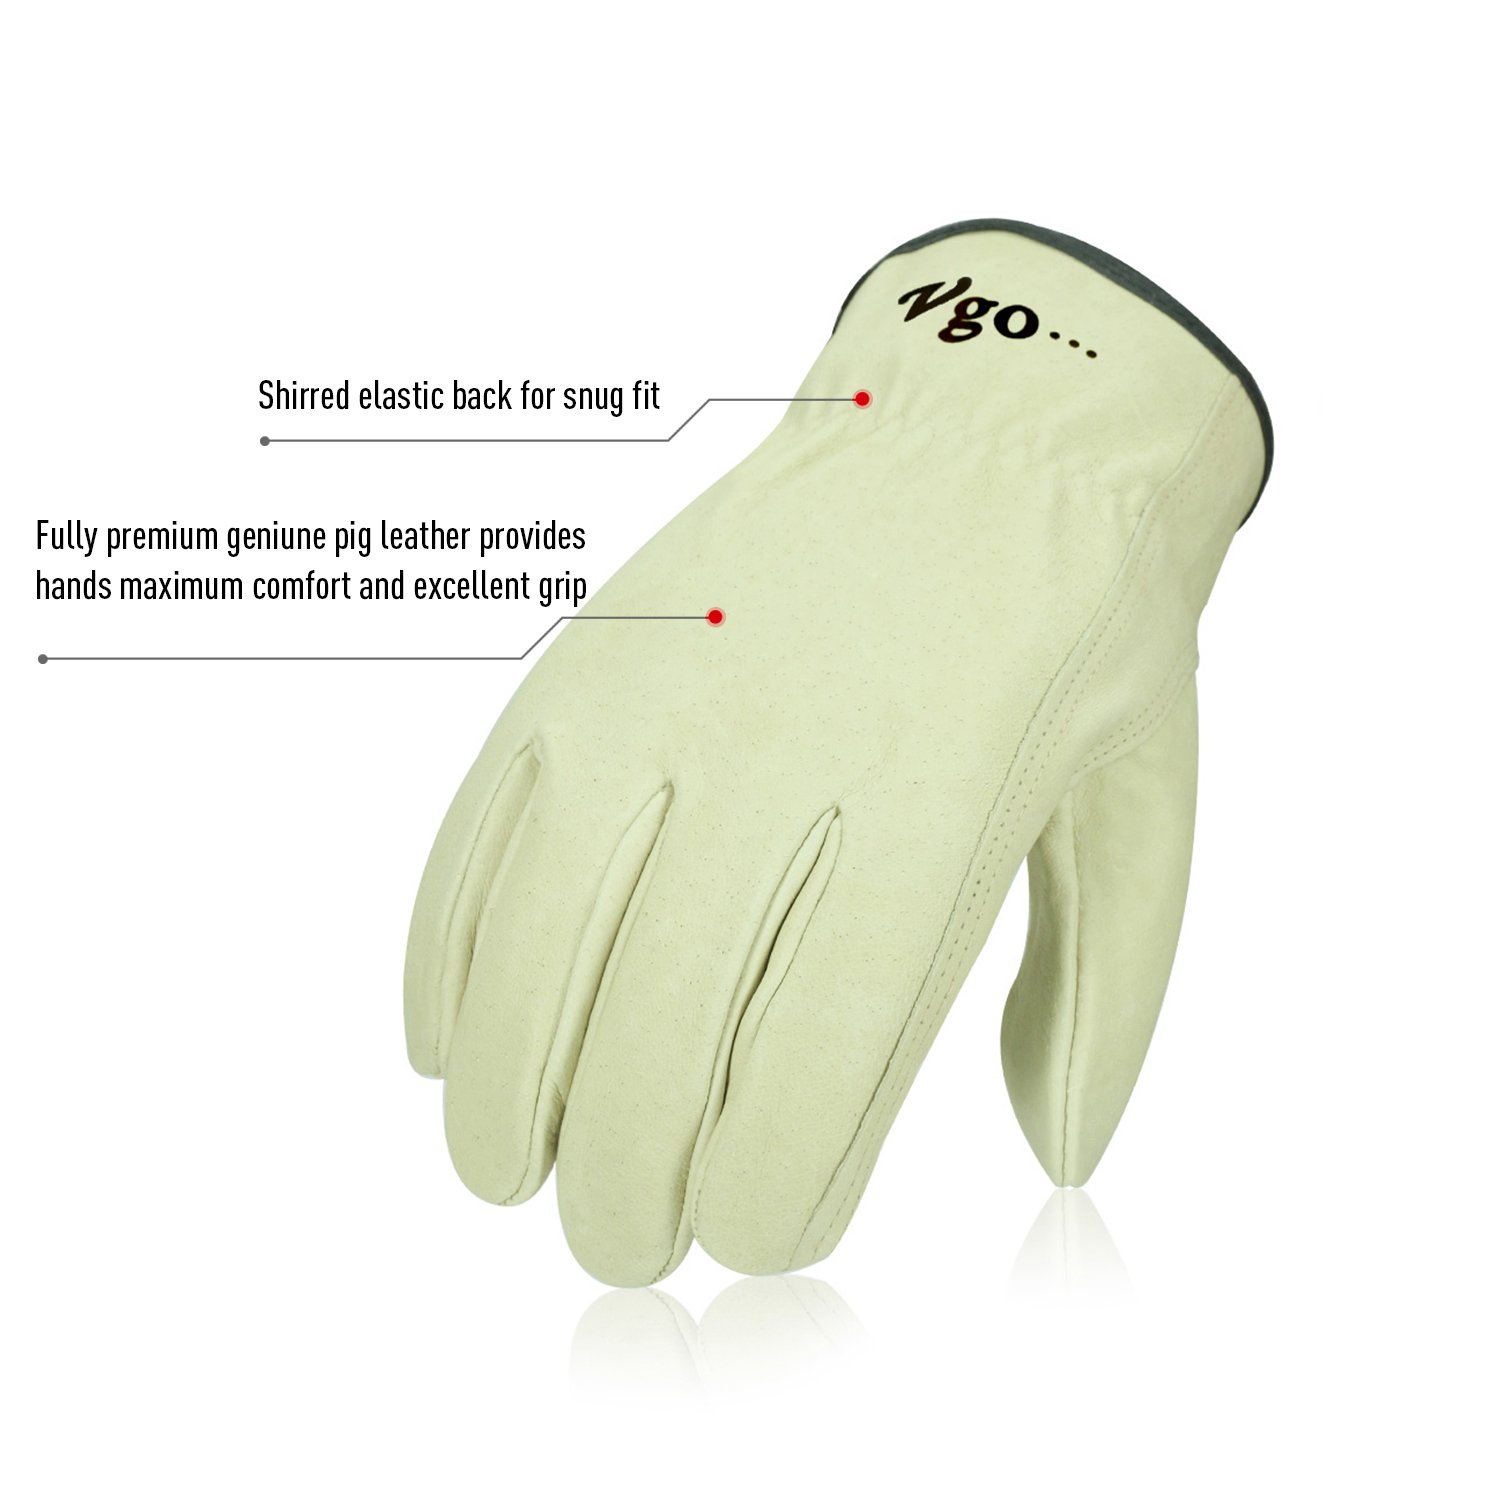 Vgo 3Pairs Unlined Men's Pigskin Leather Work Gloves, Drivers Gloves(Size M,Light Cyan,PA9501) by Vgo... (Image #3)